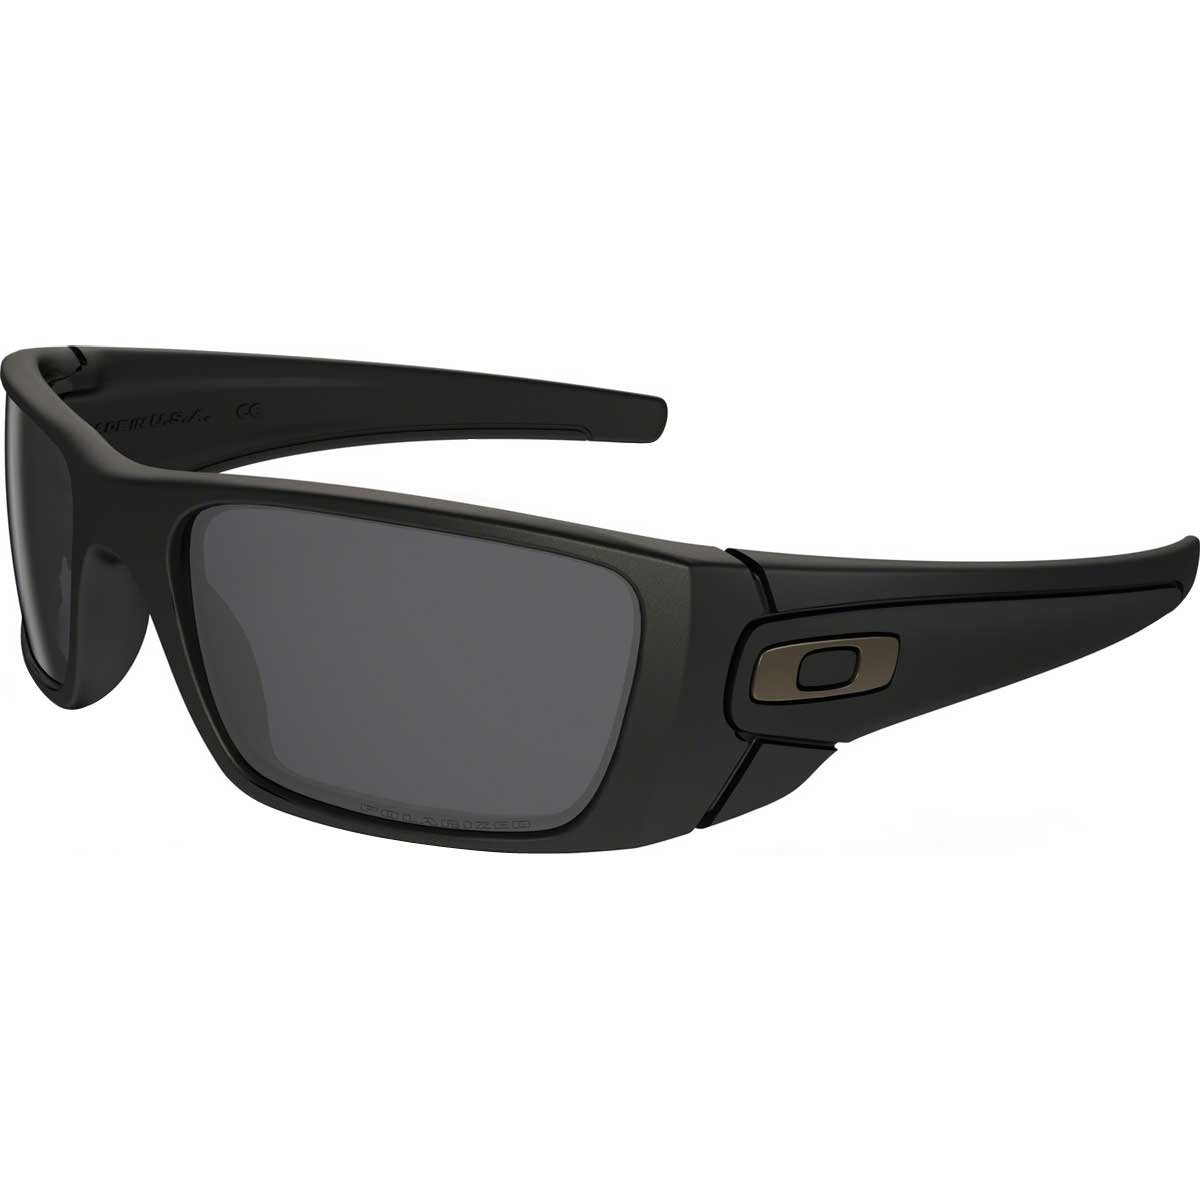 Oakley Fuel Cell Men's Polarized Lifestyle Active Sports Sunglasses/Eyewear - Matte Black/Matte Black/Grey / One Size Fits All by Oakley